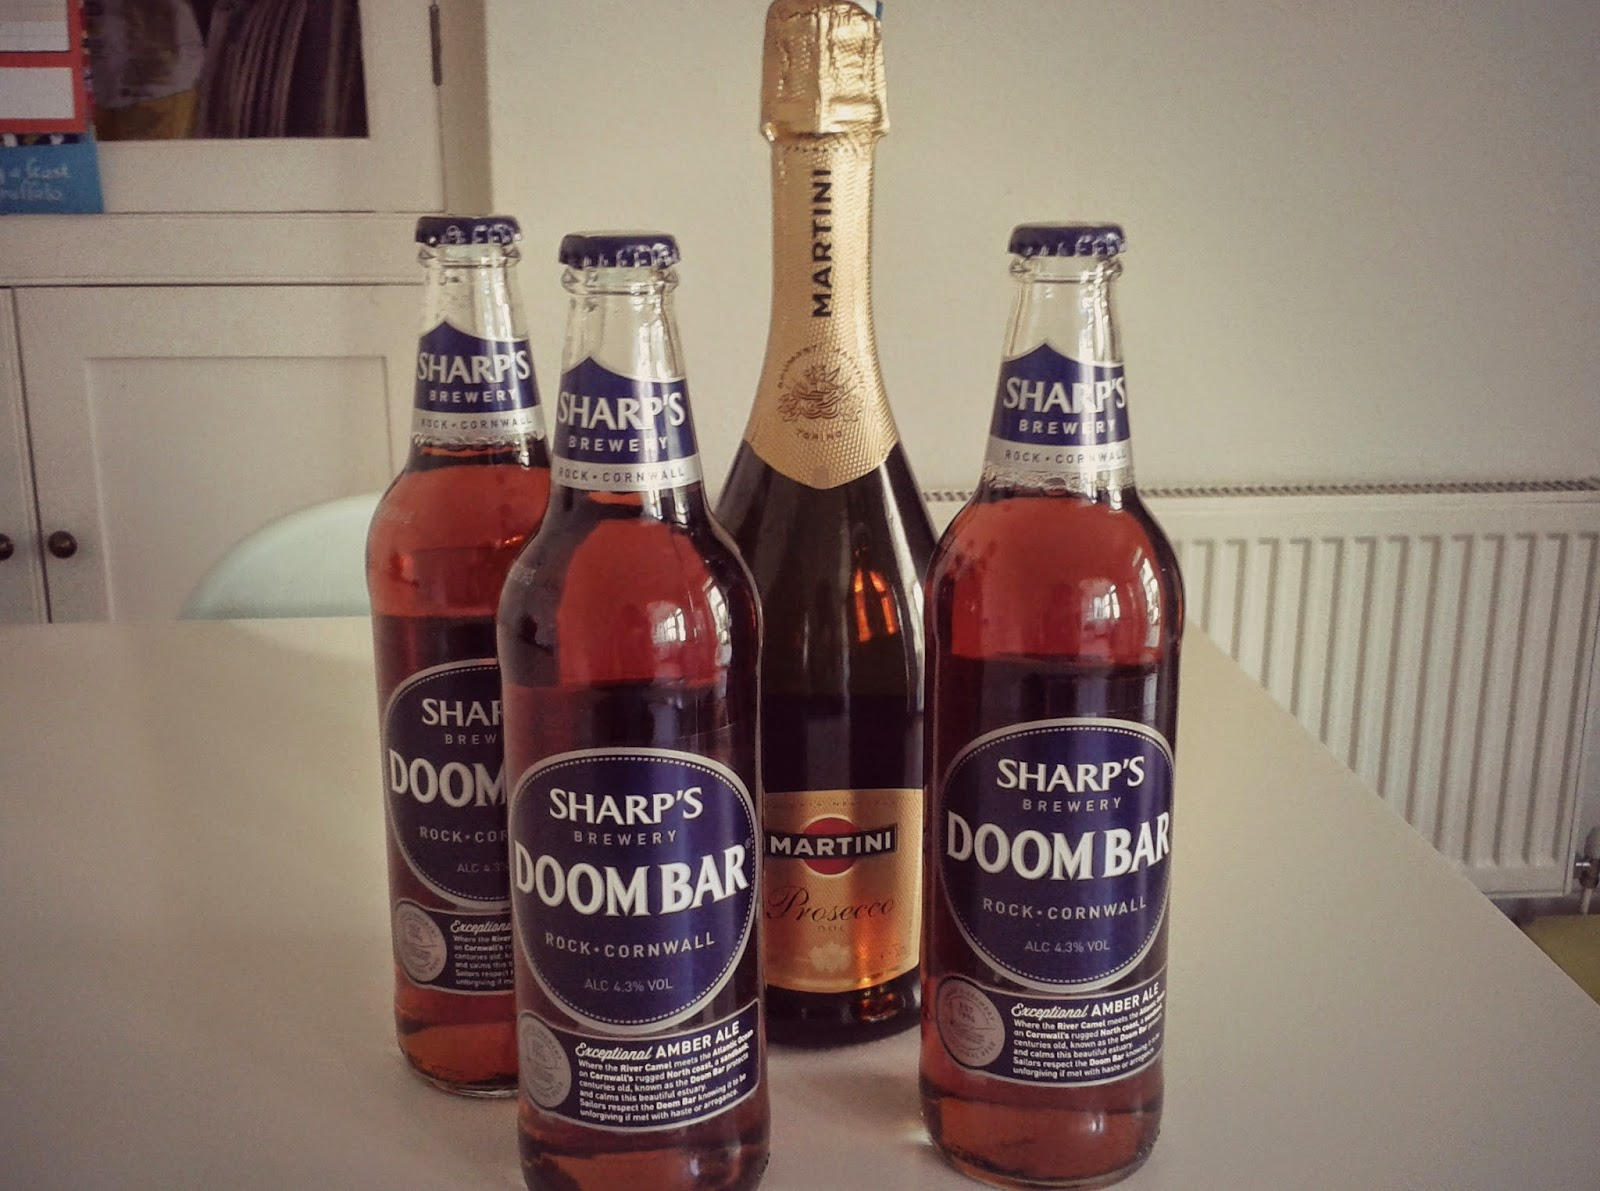 Project 365 day 251 - Doombar & Prosecco // 76sunflowers